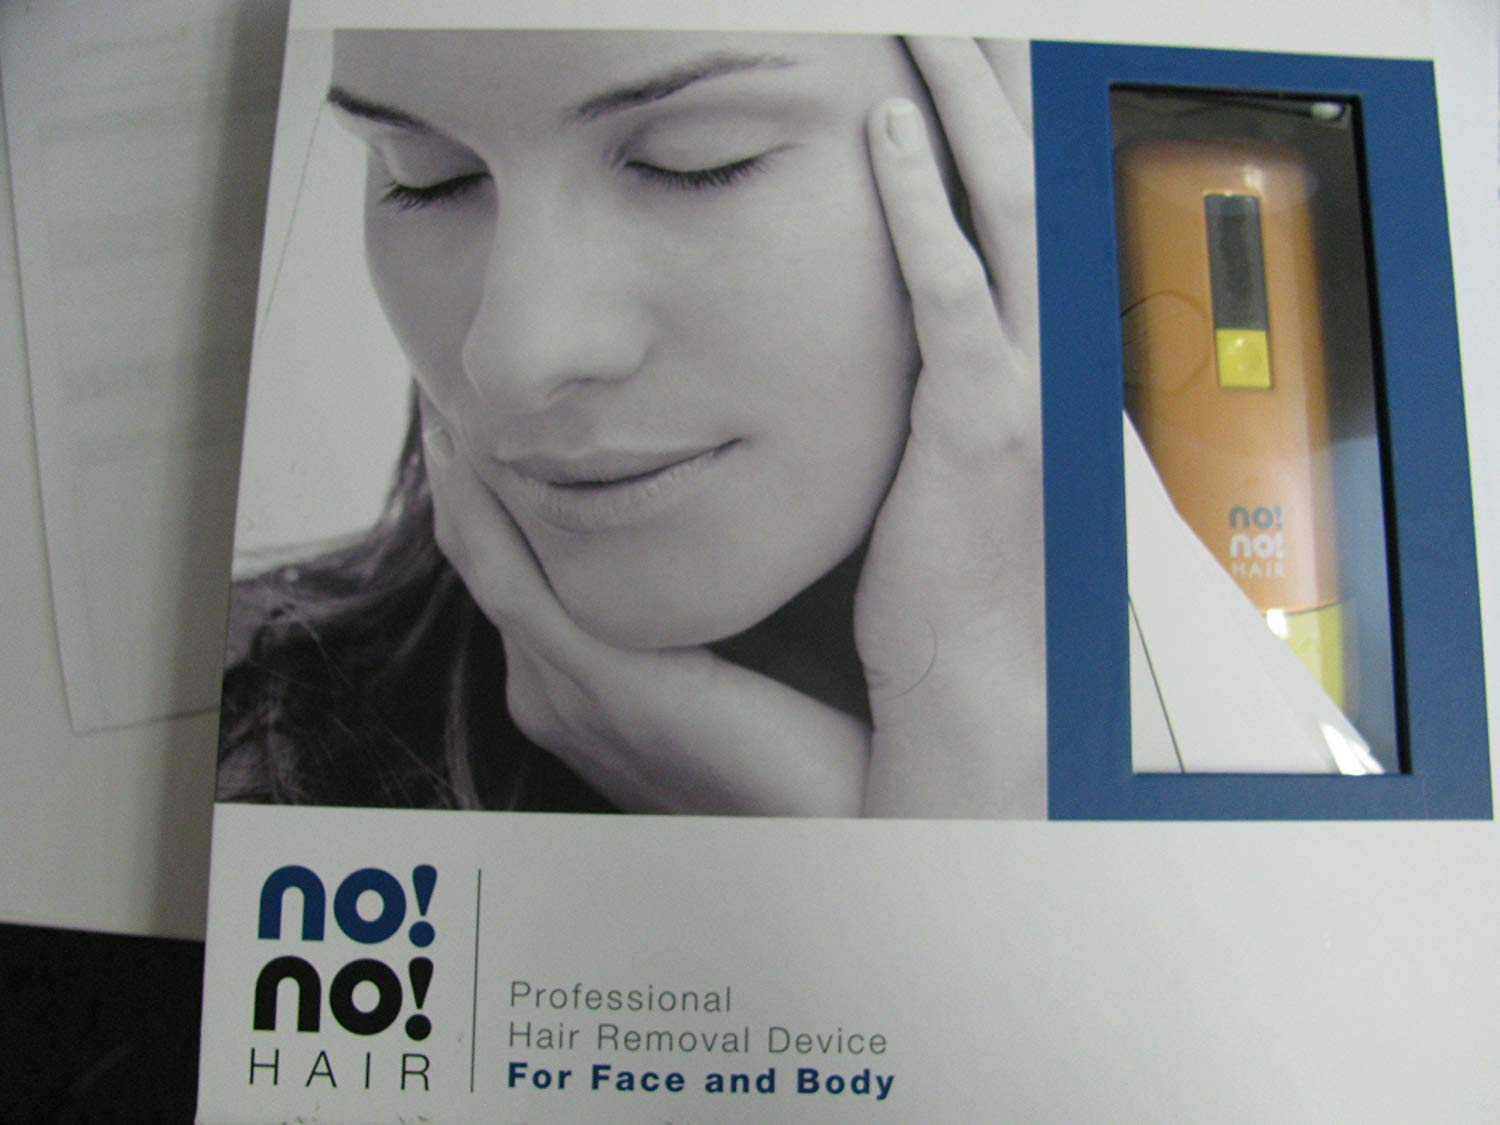 Get Quotations · Radiancy No!no! 8800 Hair Removal - Gold